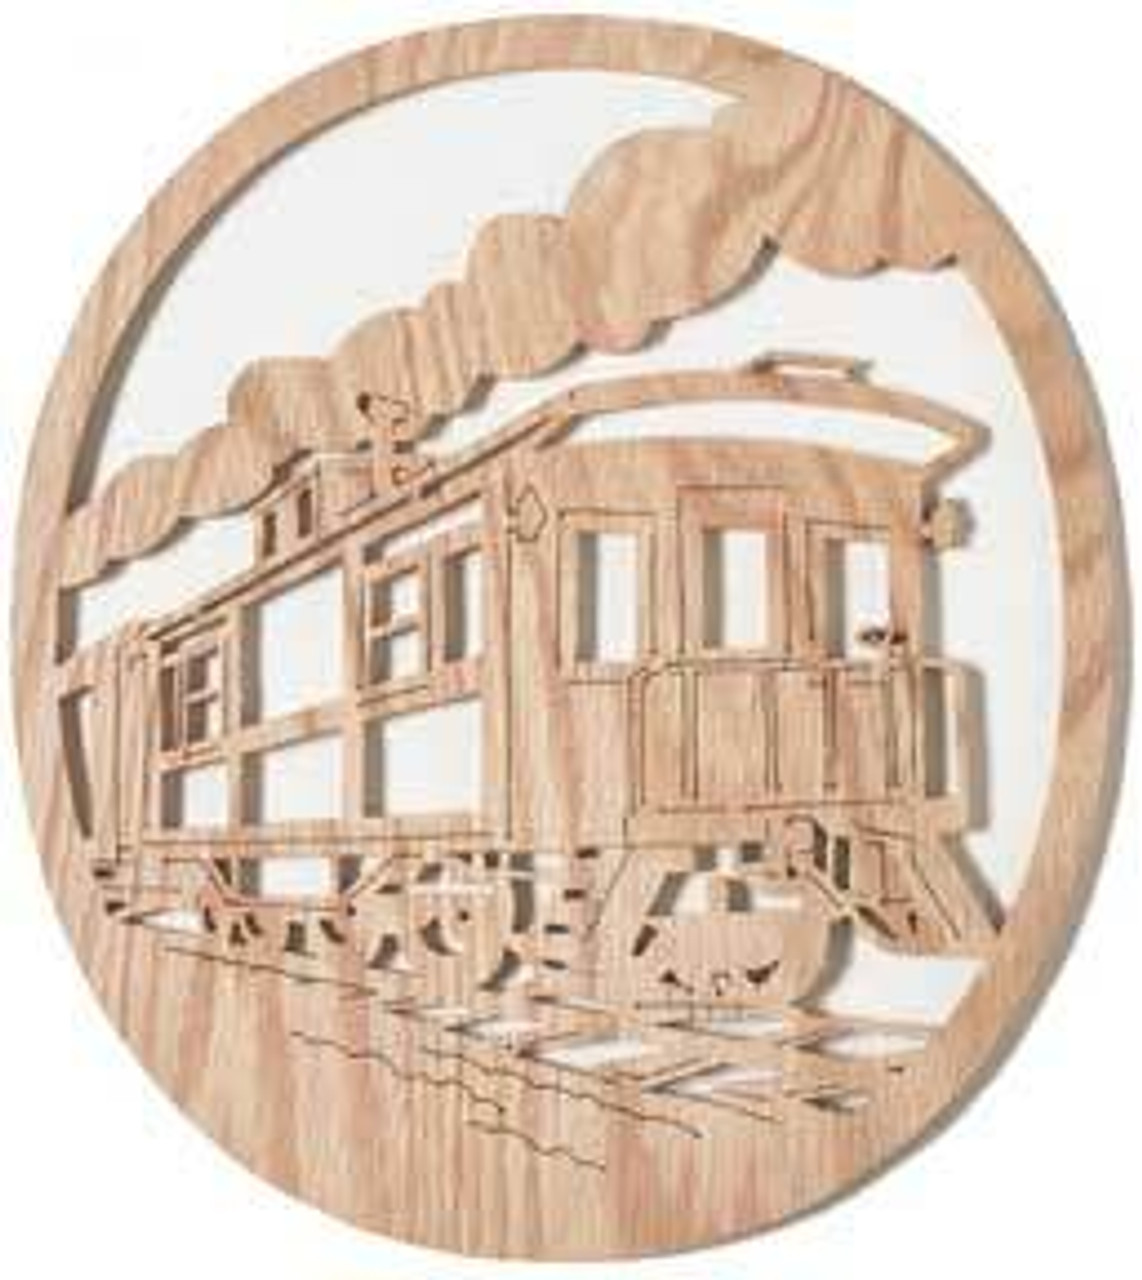 Wildwood Designs Lucky Caboose Scroll Saw Pattern